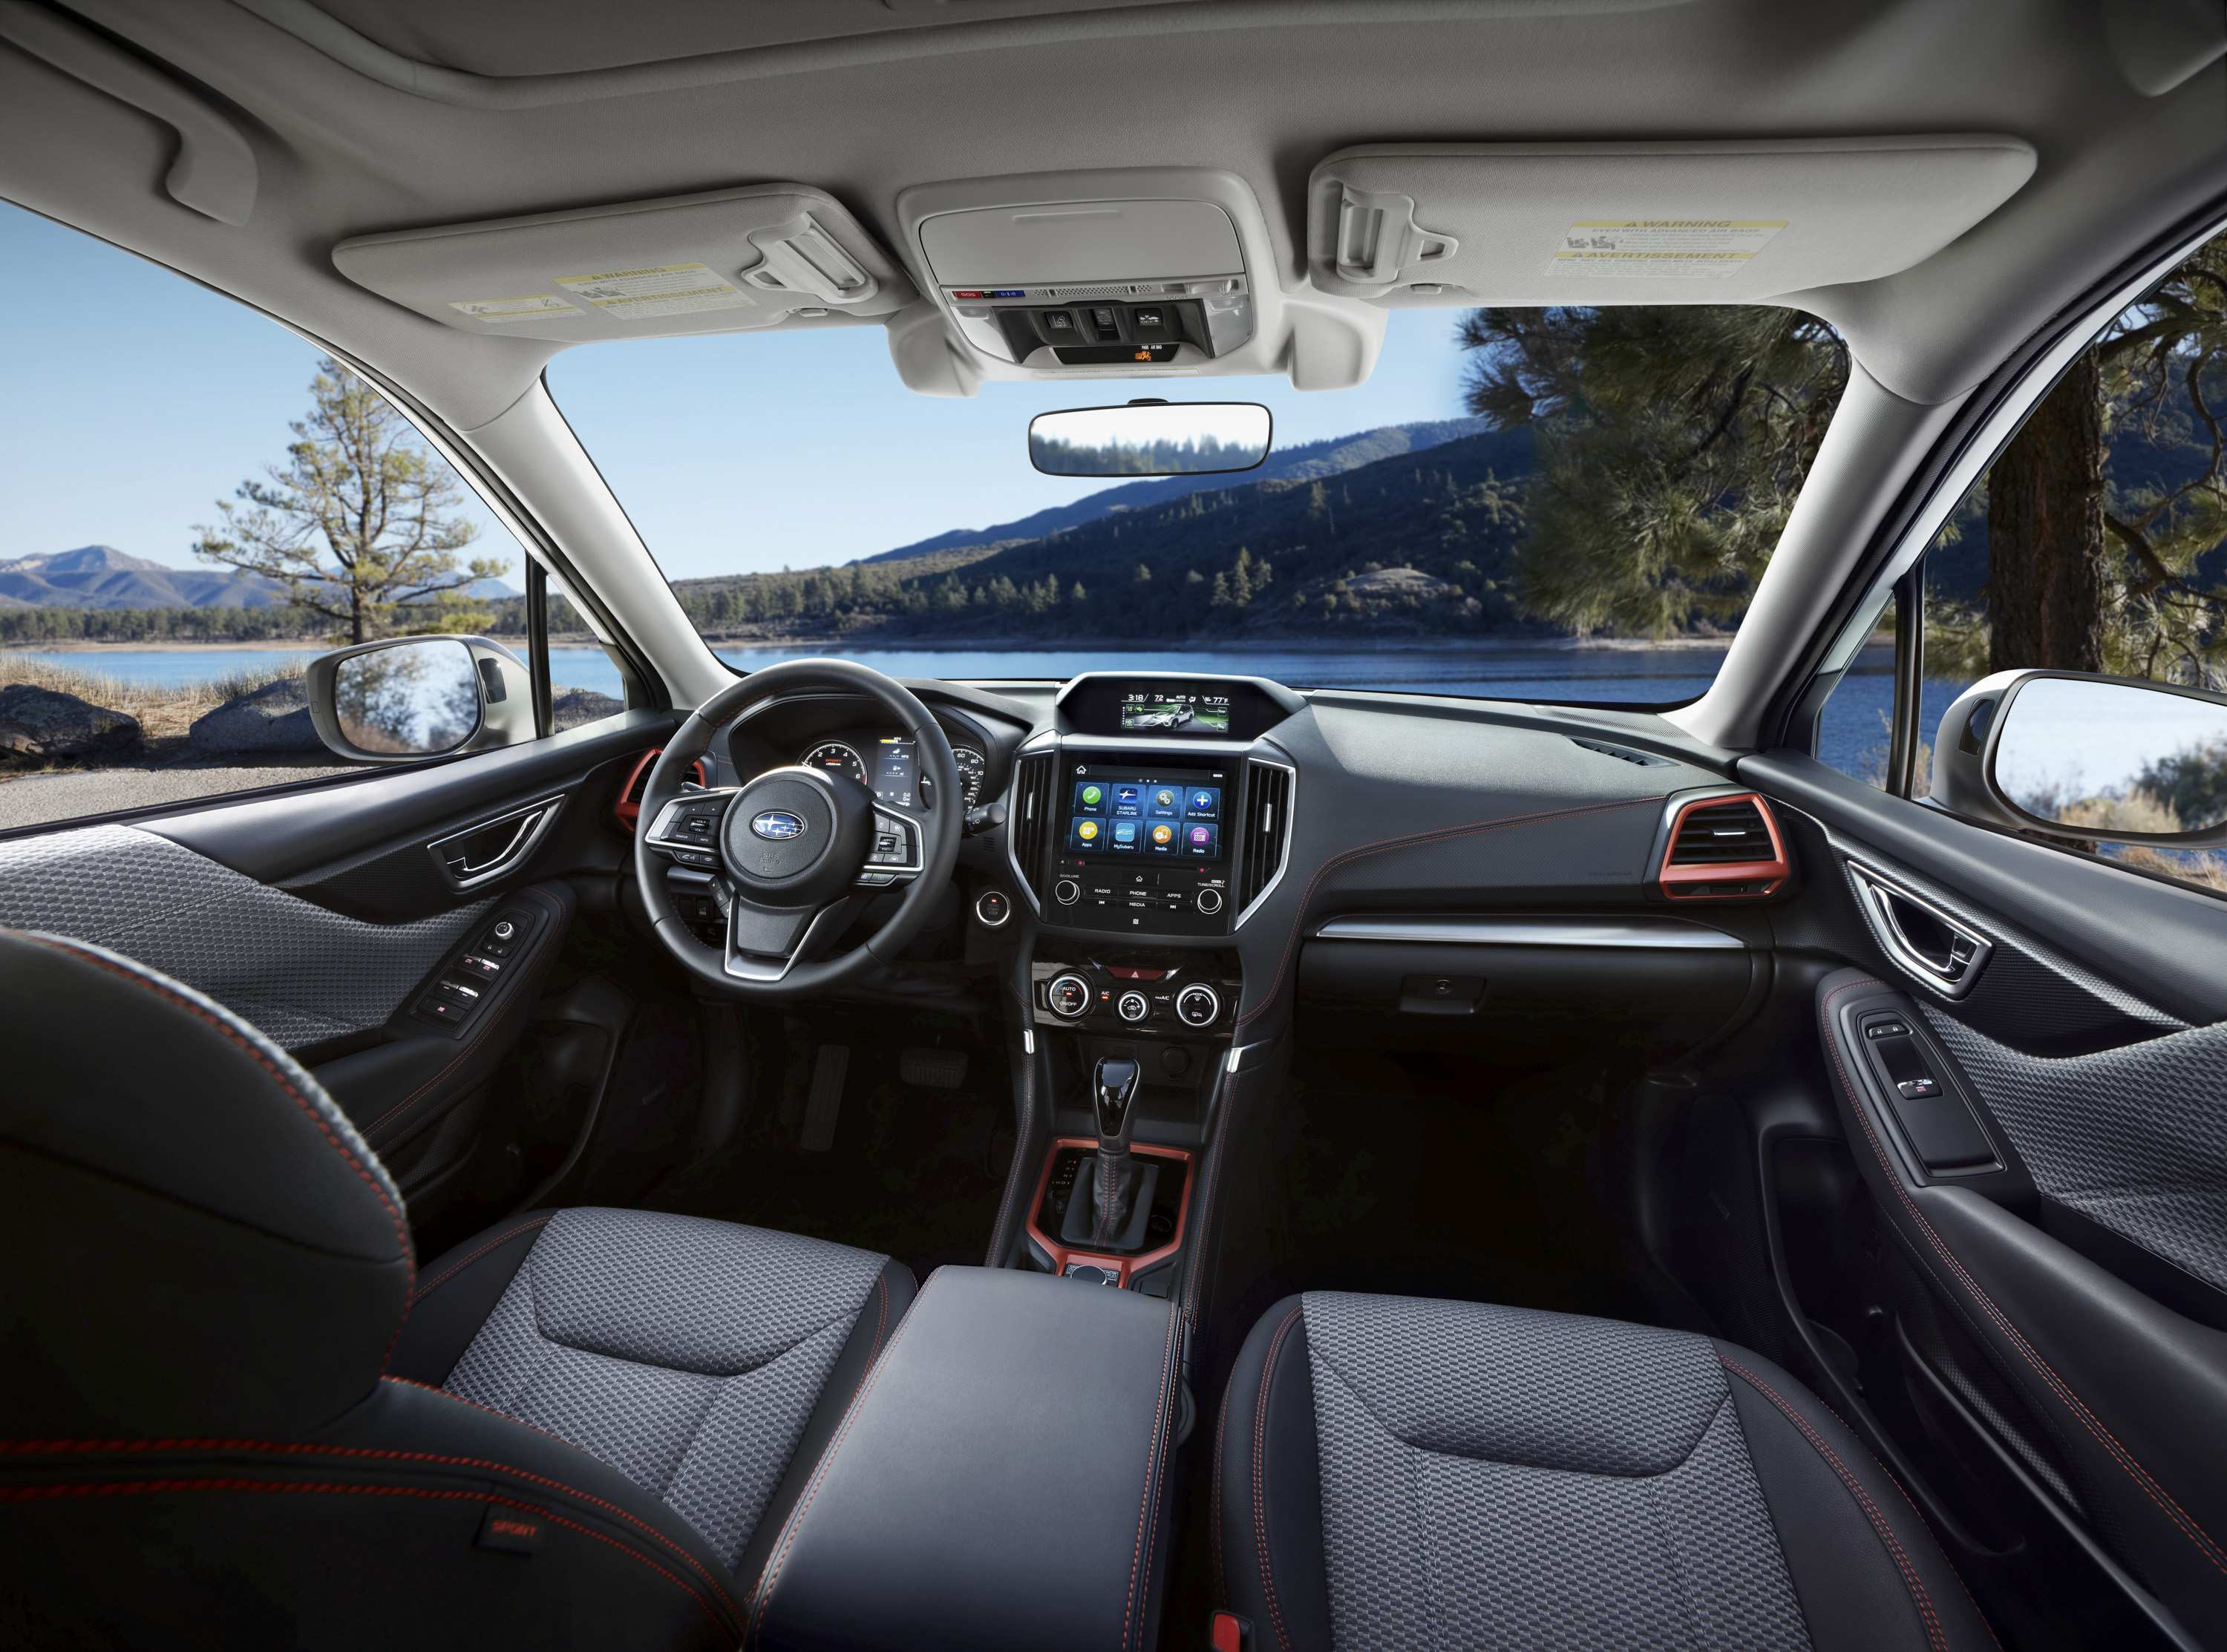 98 Best Review The Subaru 2019 Forester Specs Interior Performance and New Engine by The Subaru 2019 Forester Specs Interior